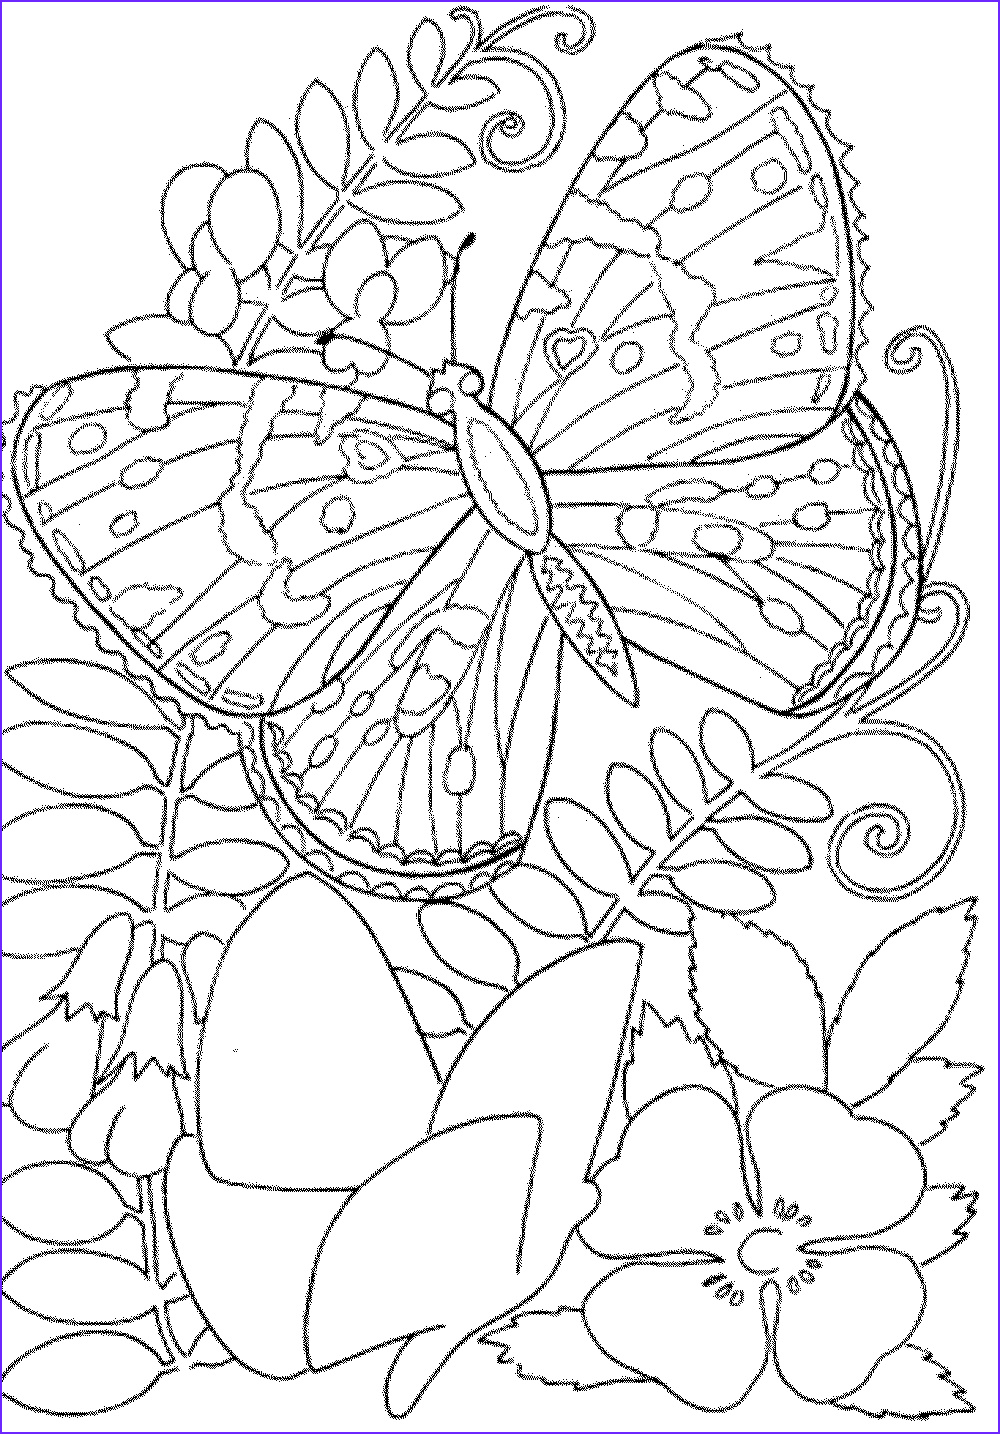 Adult Coloring Book Printable New Collection Free Owl Adult Coloring Pages to Print Coloring Home